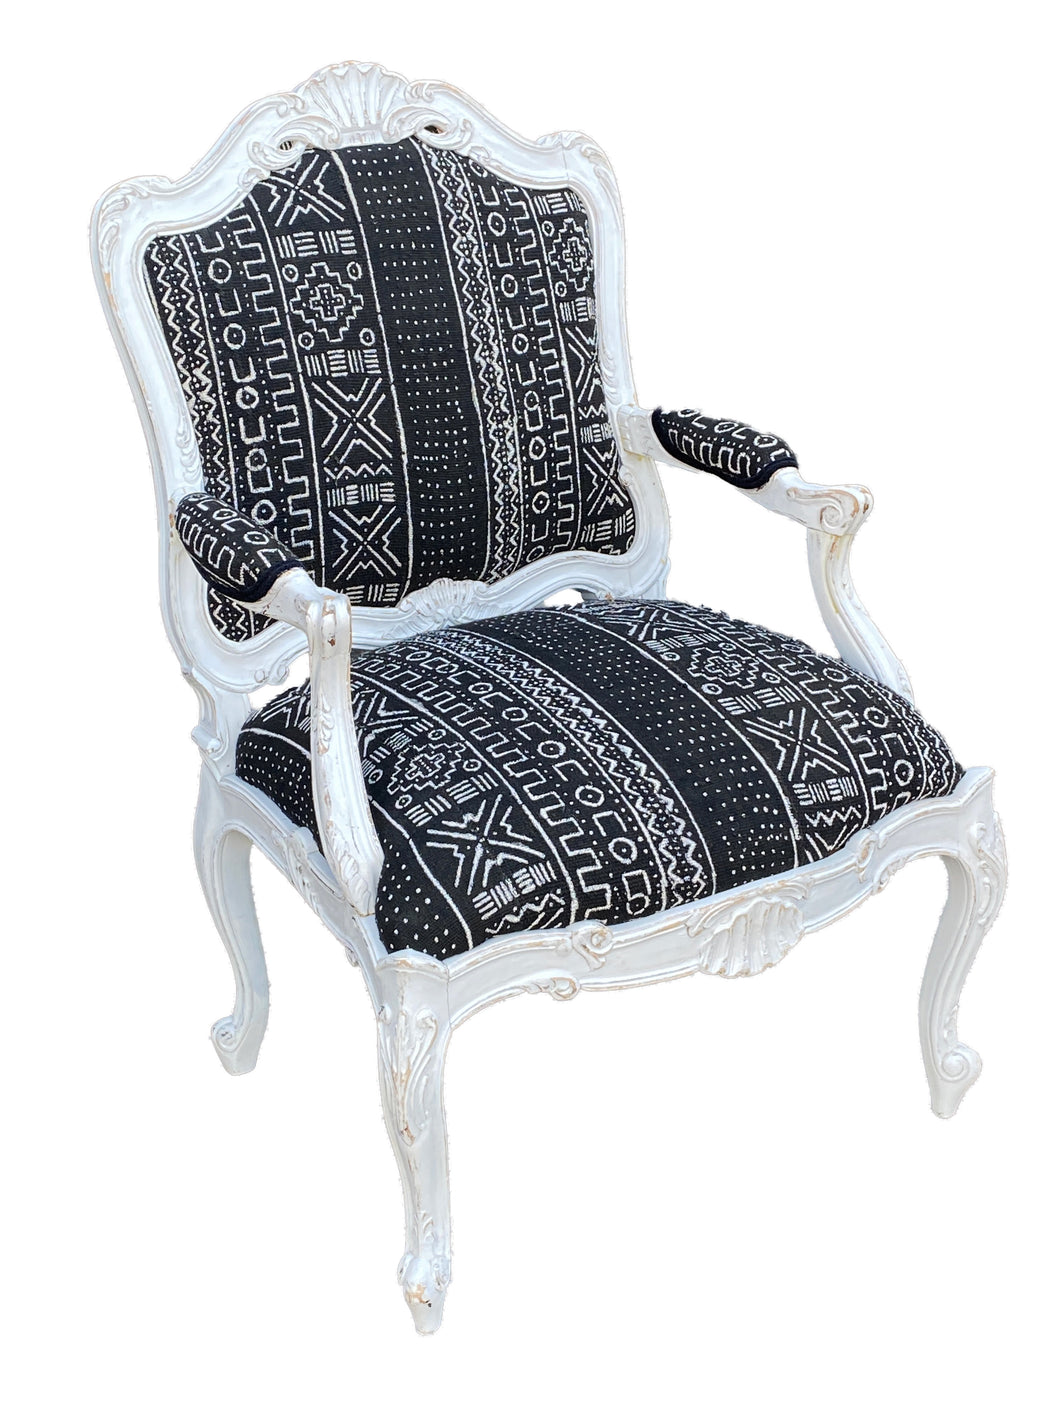 French Style Chair With Black & White Mud Cloth